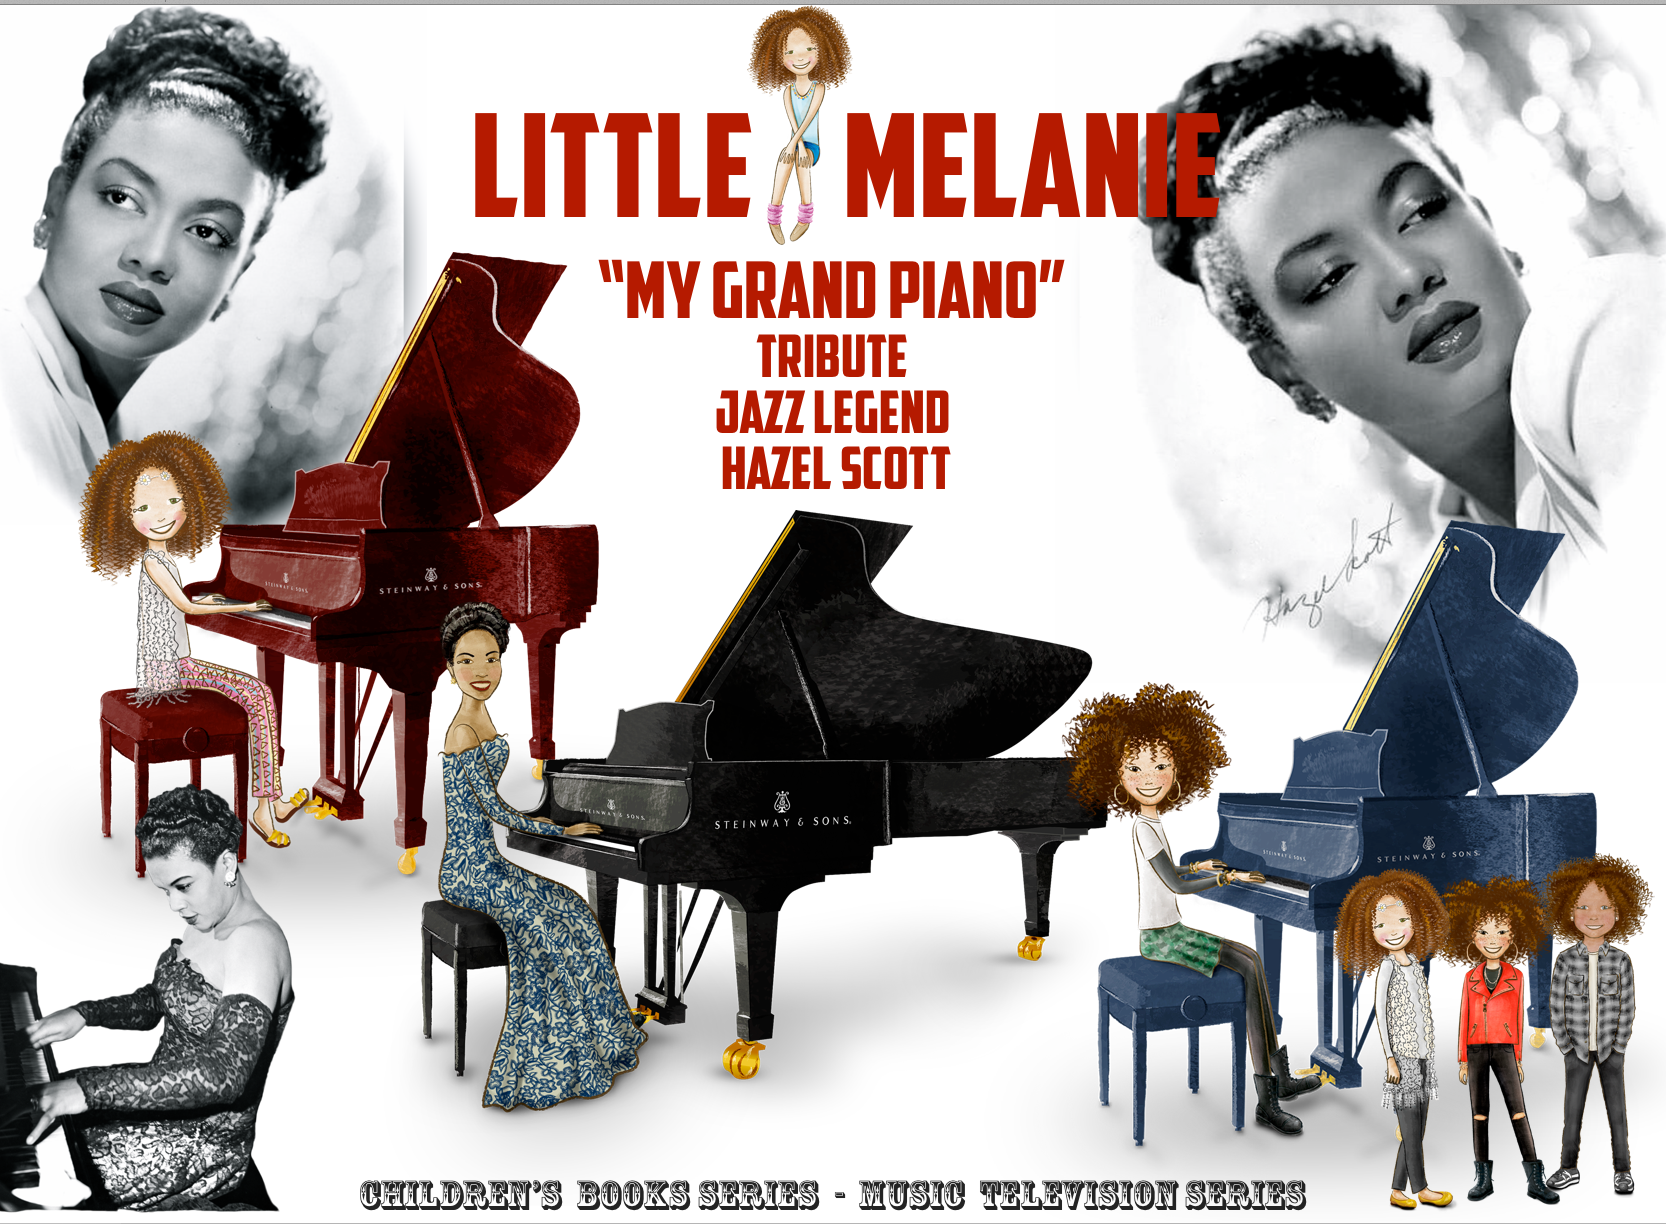 LITTLE MELANIE - MY GRAND PIANO - TRIBUTE JAZZ LEGEND HAZEL SCOTT